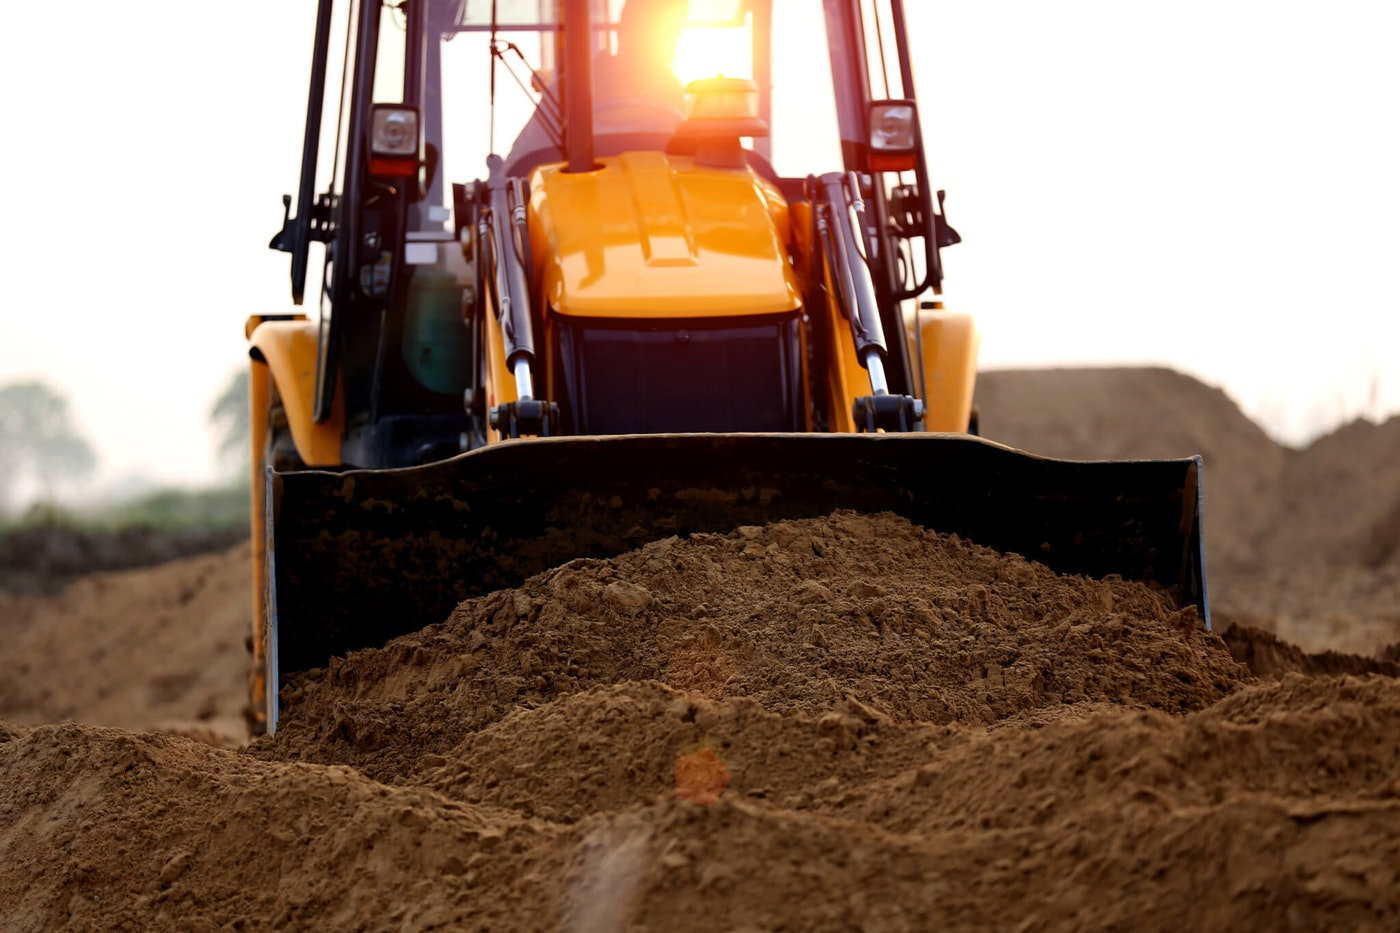 close-up of a heavy machine scooping dirt